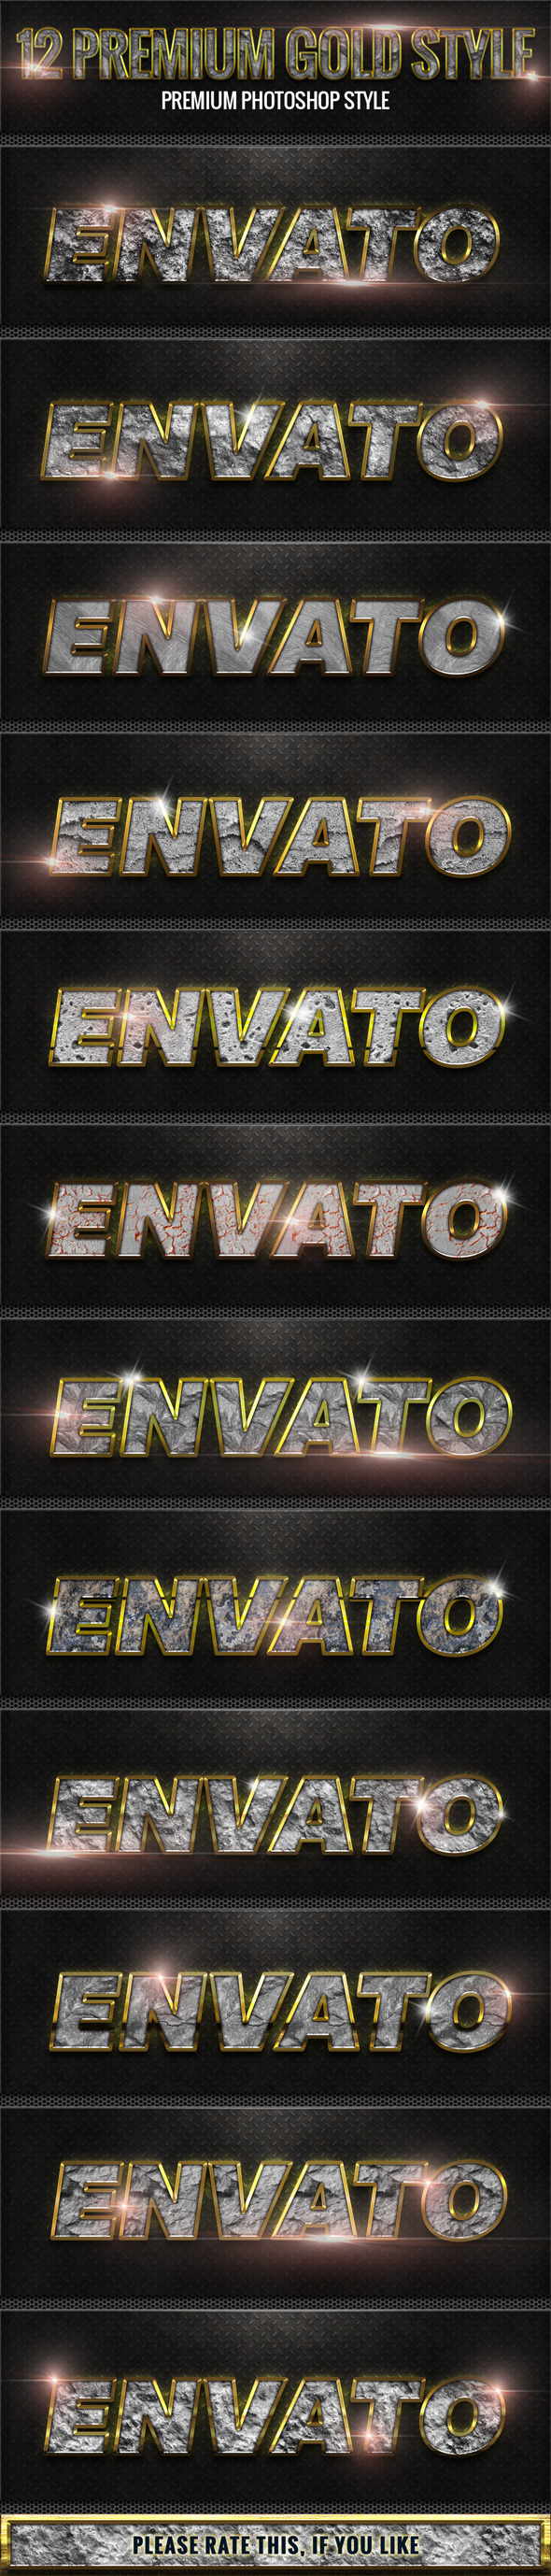 12 New Rock With Gold Style - Styles Photoshop